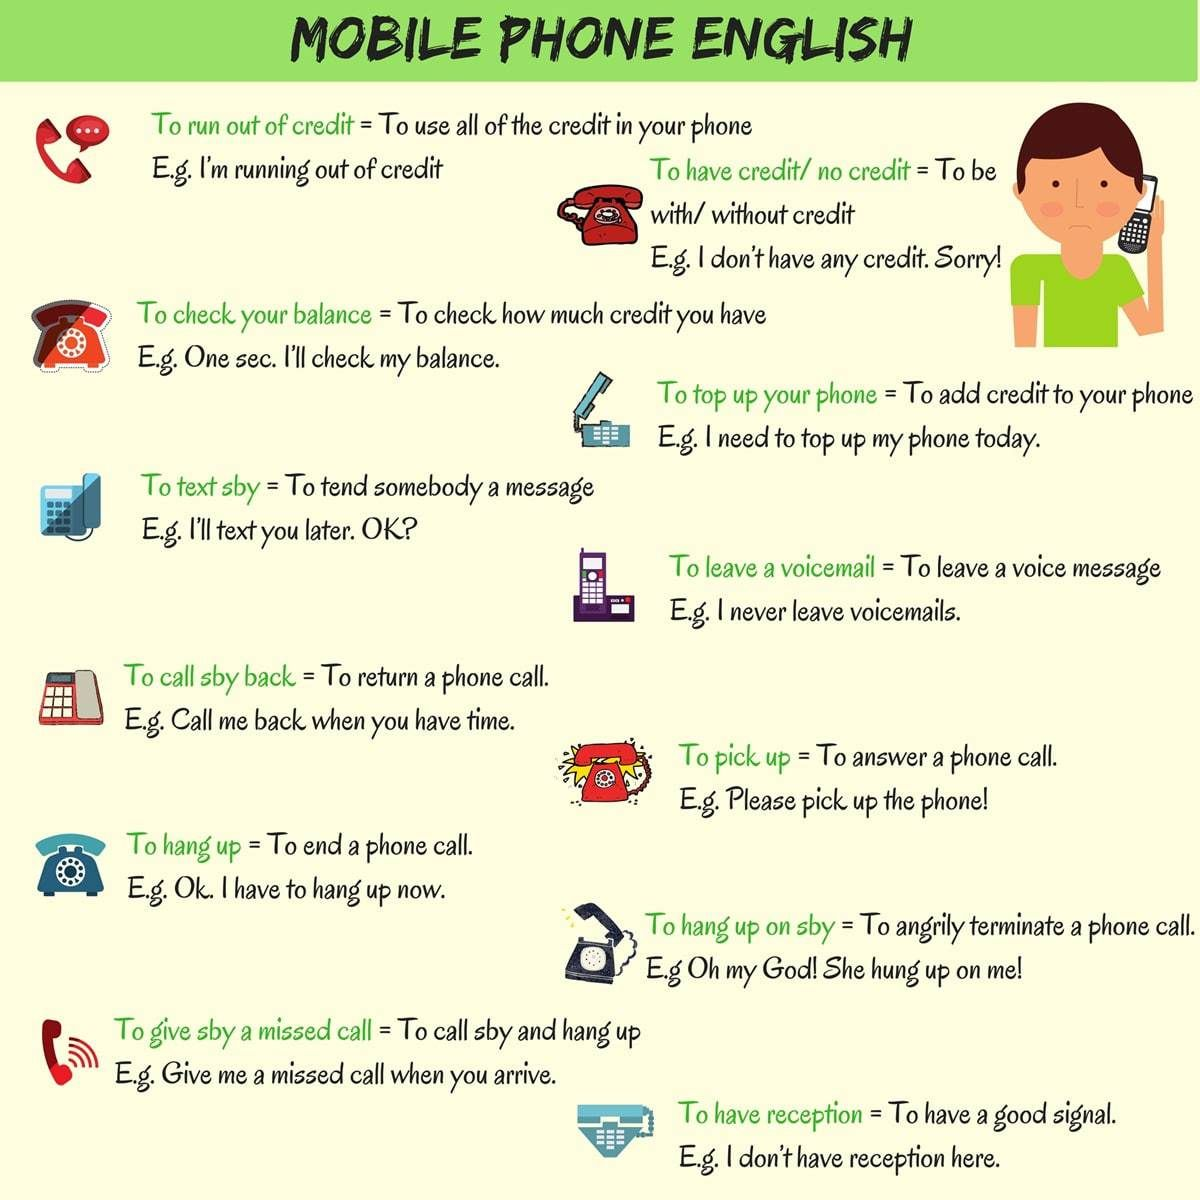 Common Telephone Vocabulary And Phrases In English